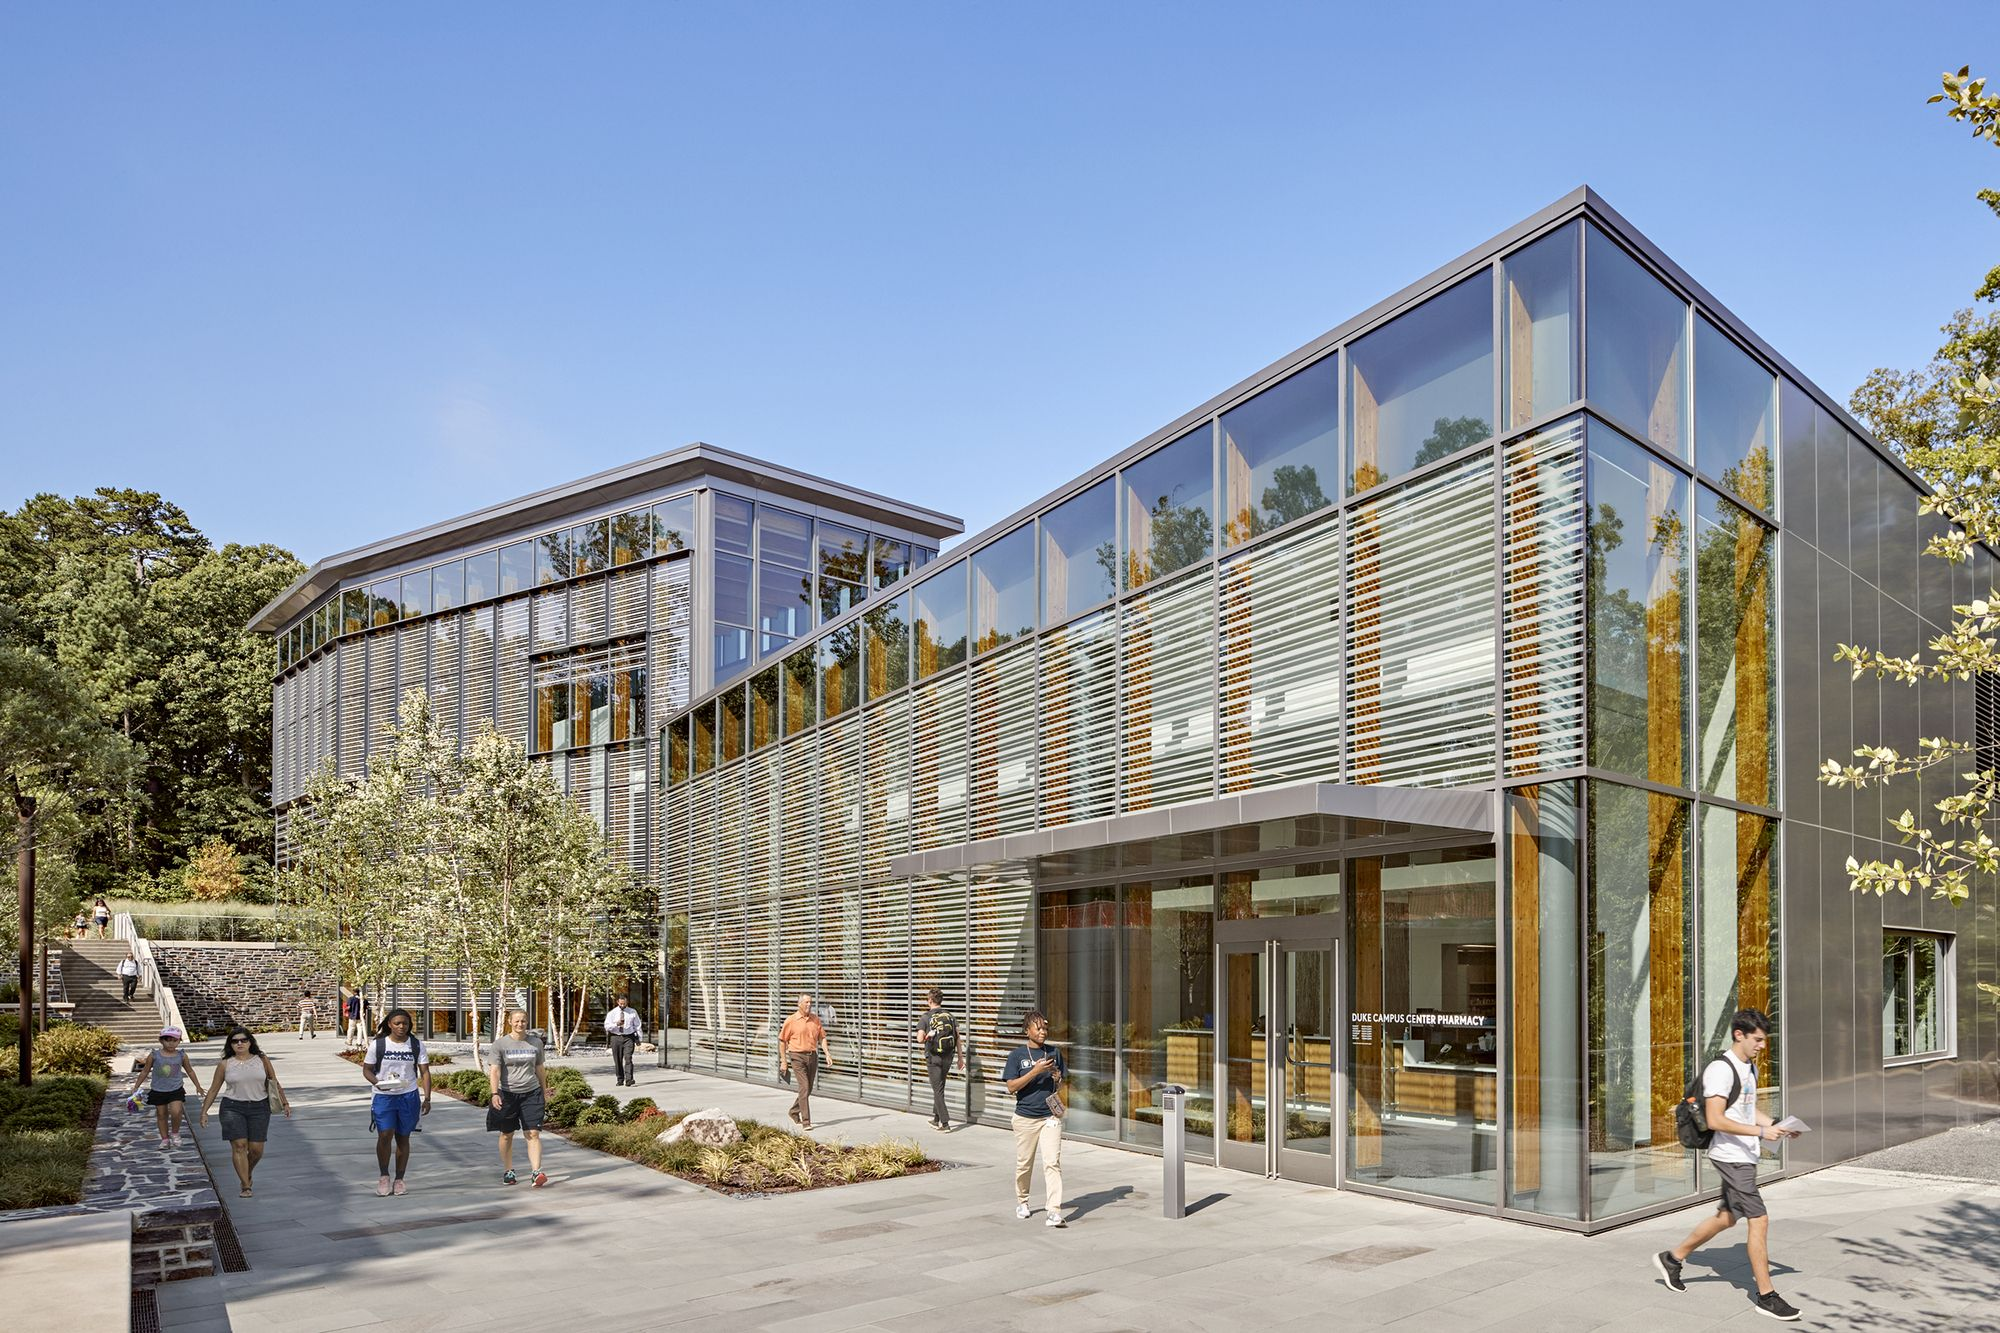 Duke Student Wellness Center Duda Paine Architects Wellness Center Architecture Architect